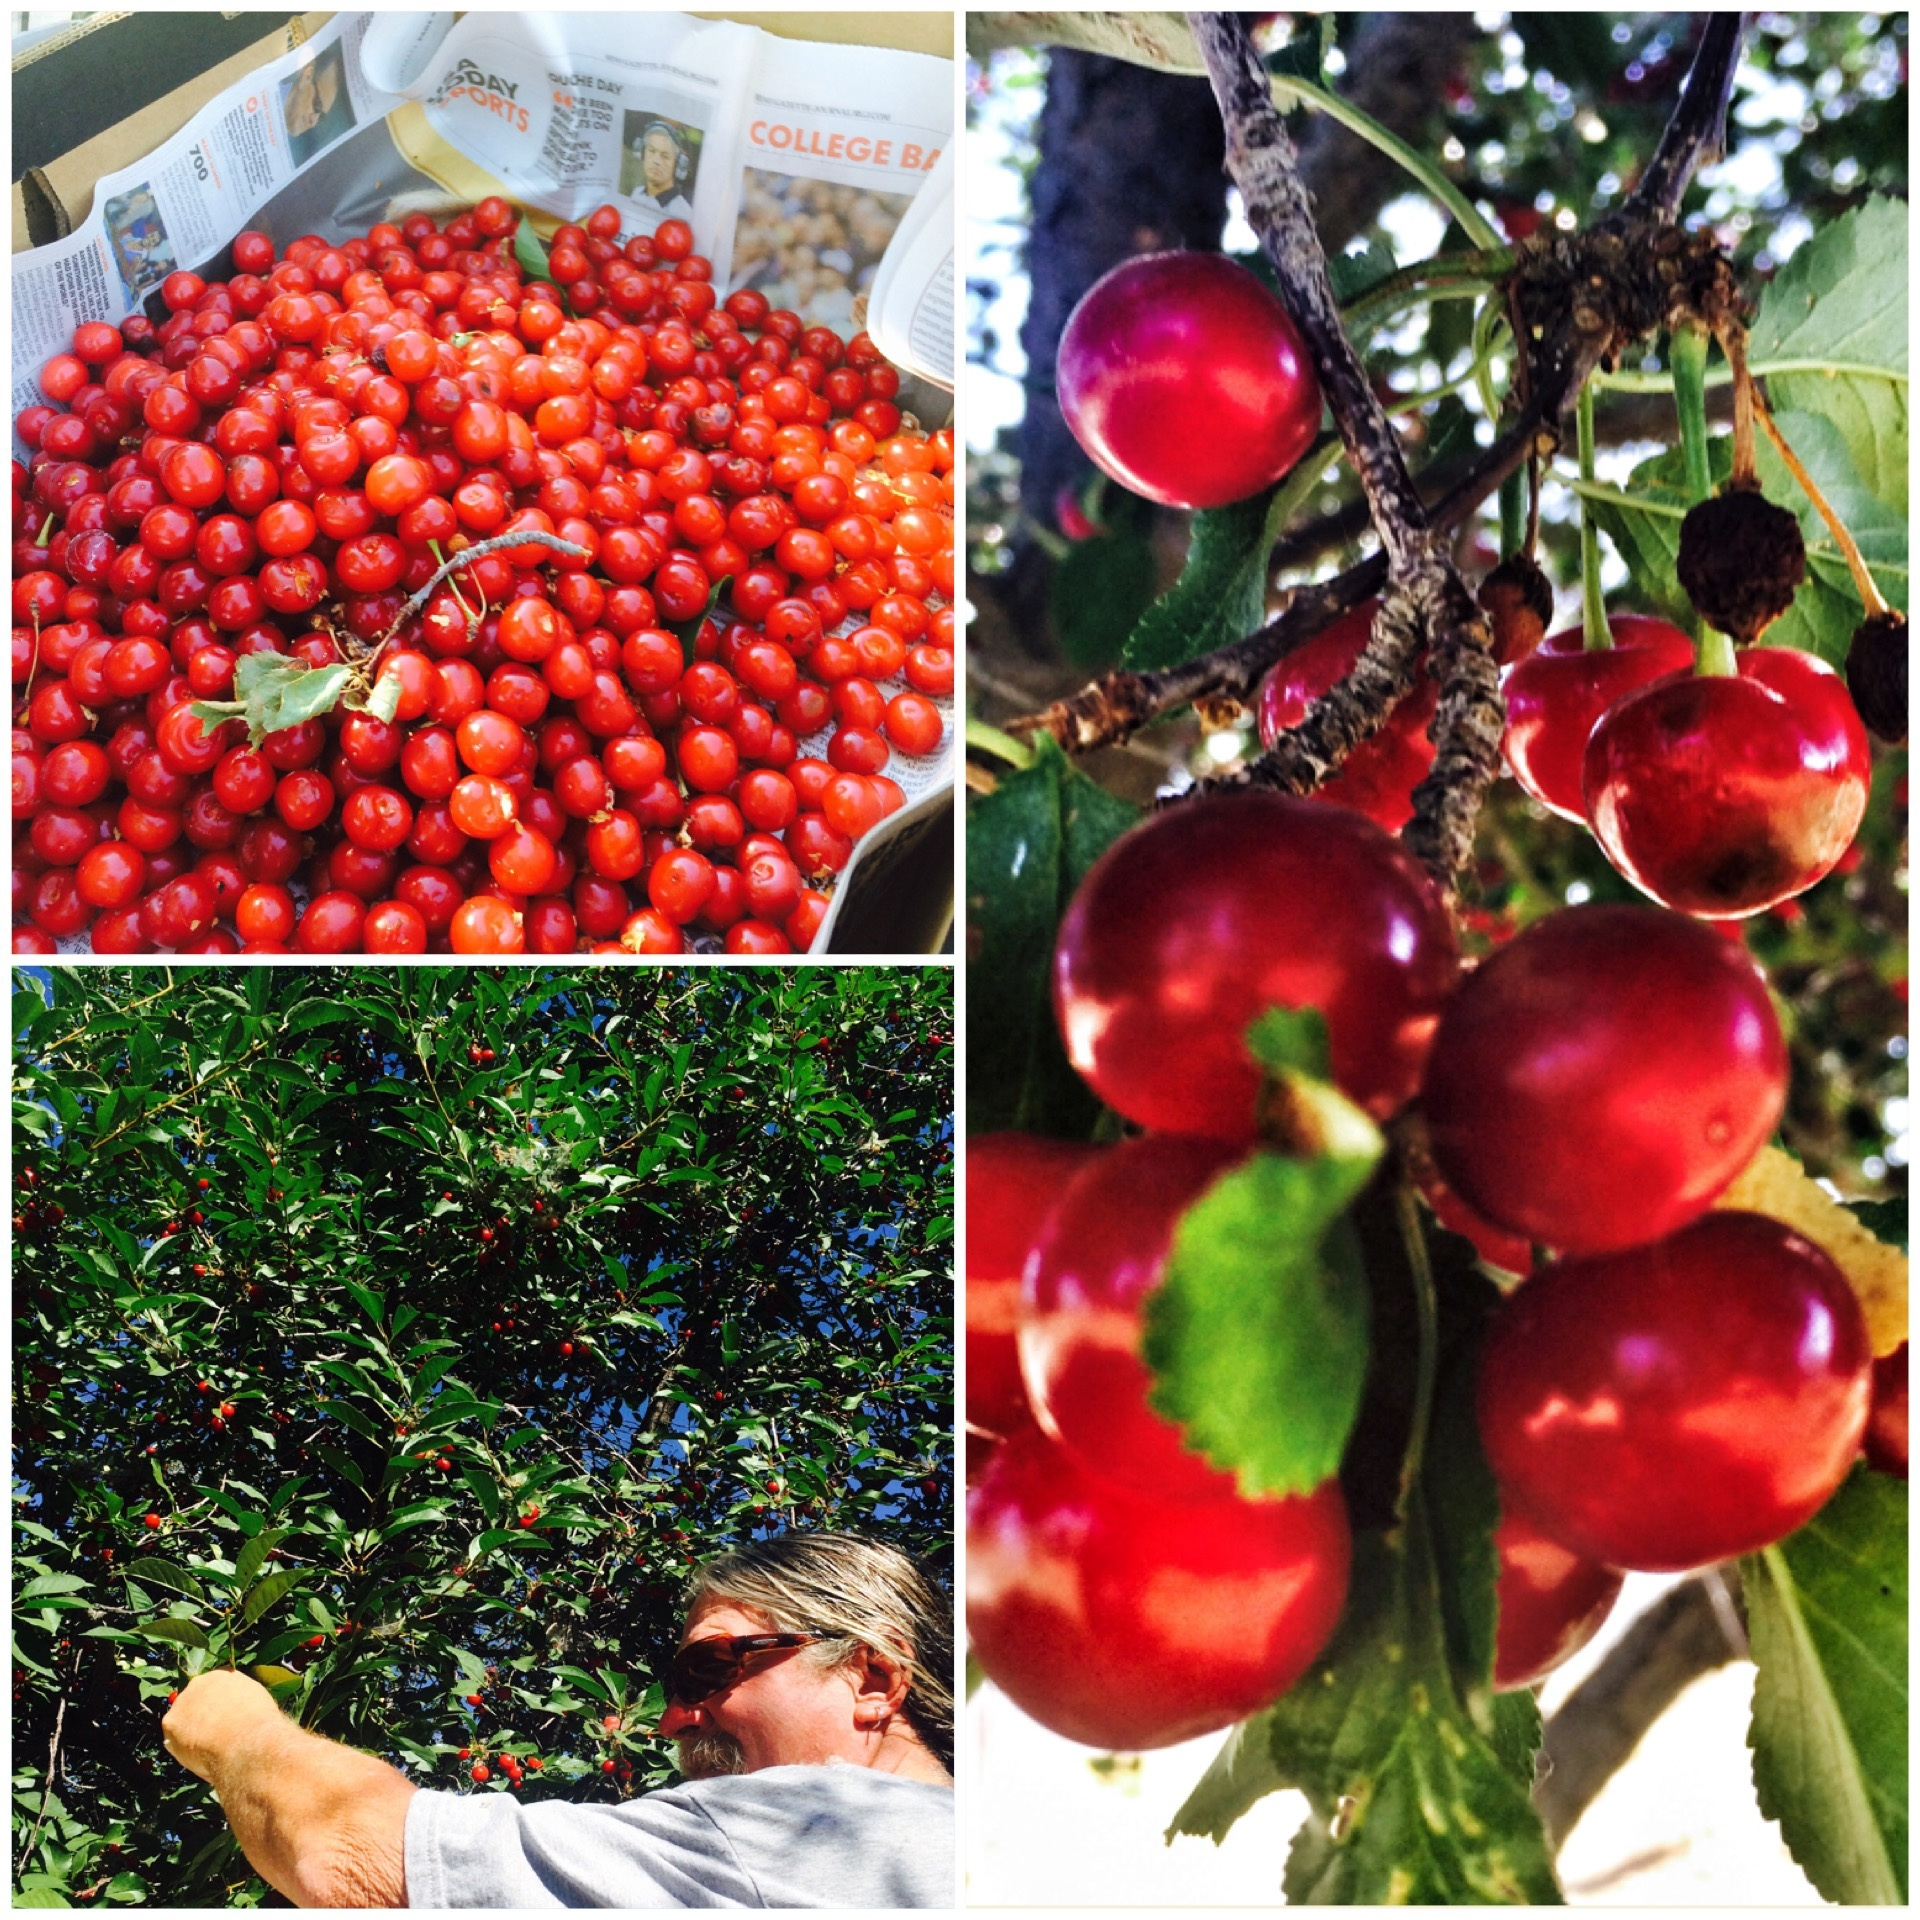 Home Orchards - All the DIRT on growing fruit and berries in Lassen County.What's hot in Backyard Orchard CultureSelecting, transplanting, pollination, fertilizing, thinning and pruning your home orchard.This class will be taught by Melissa.